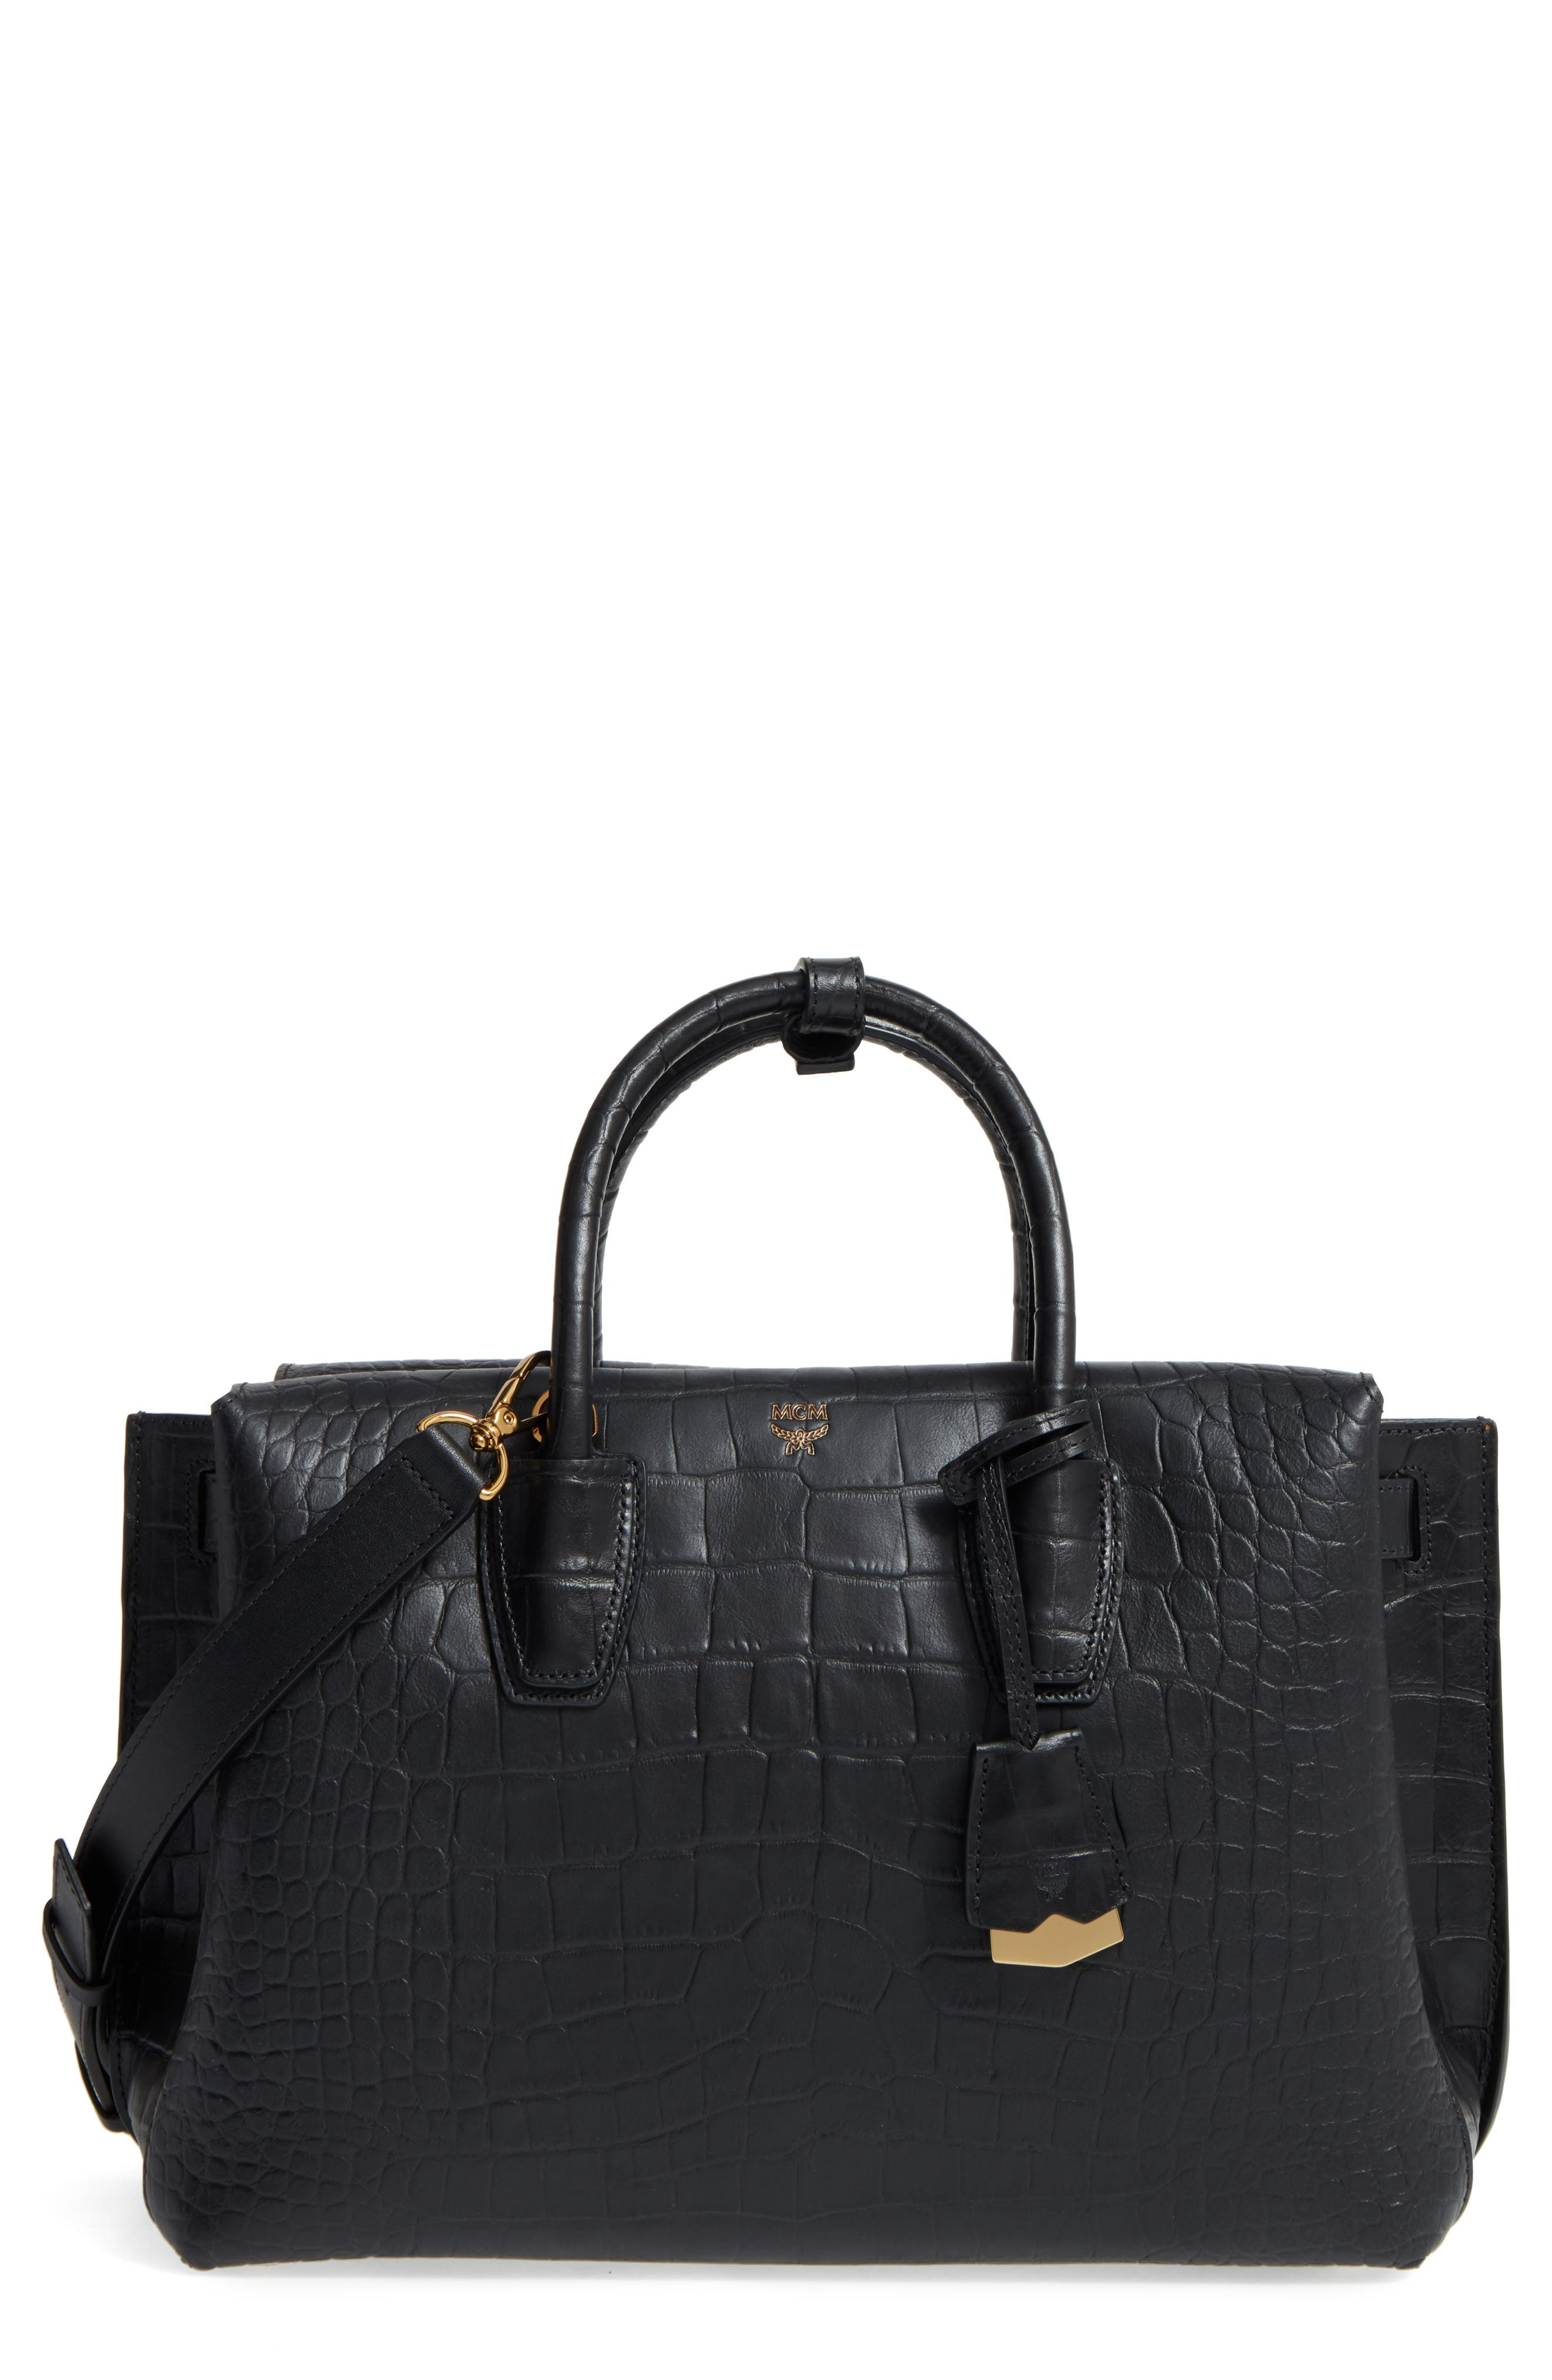 Medium Milla Croc Embossed Leather Tote,                             Main thumbnail 1, color,                             001